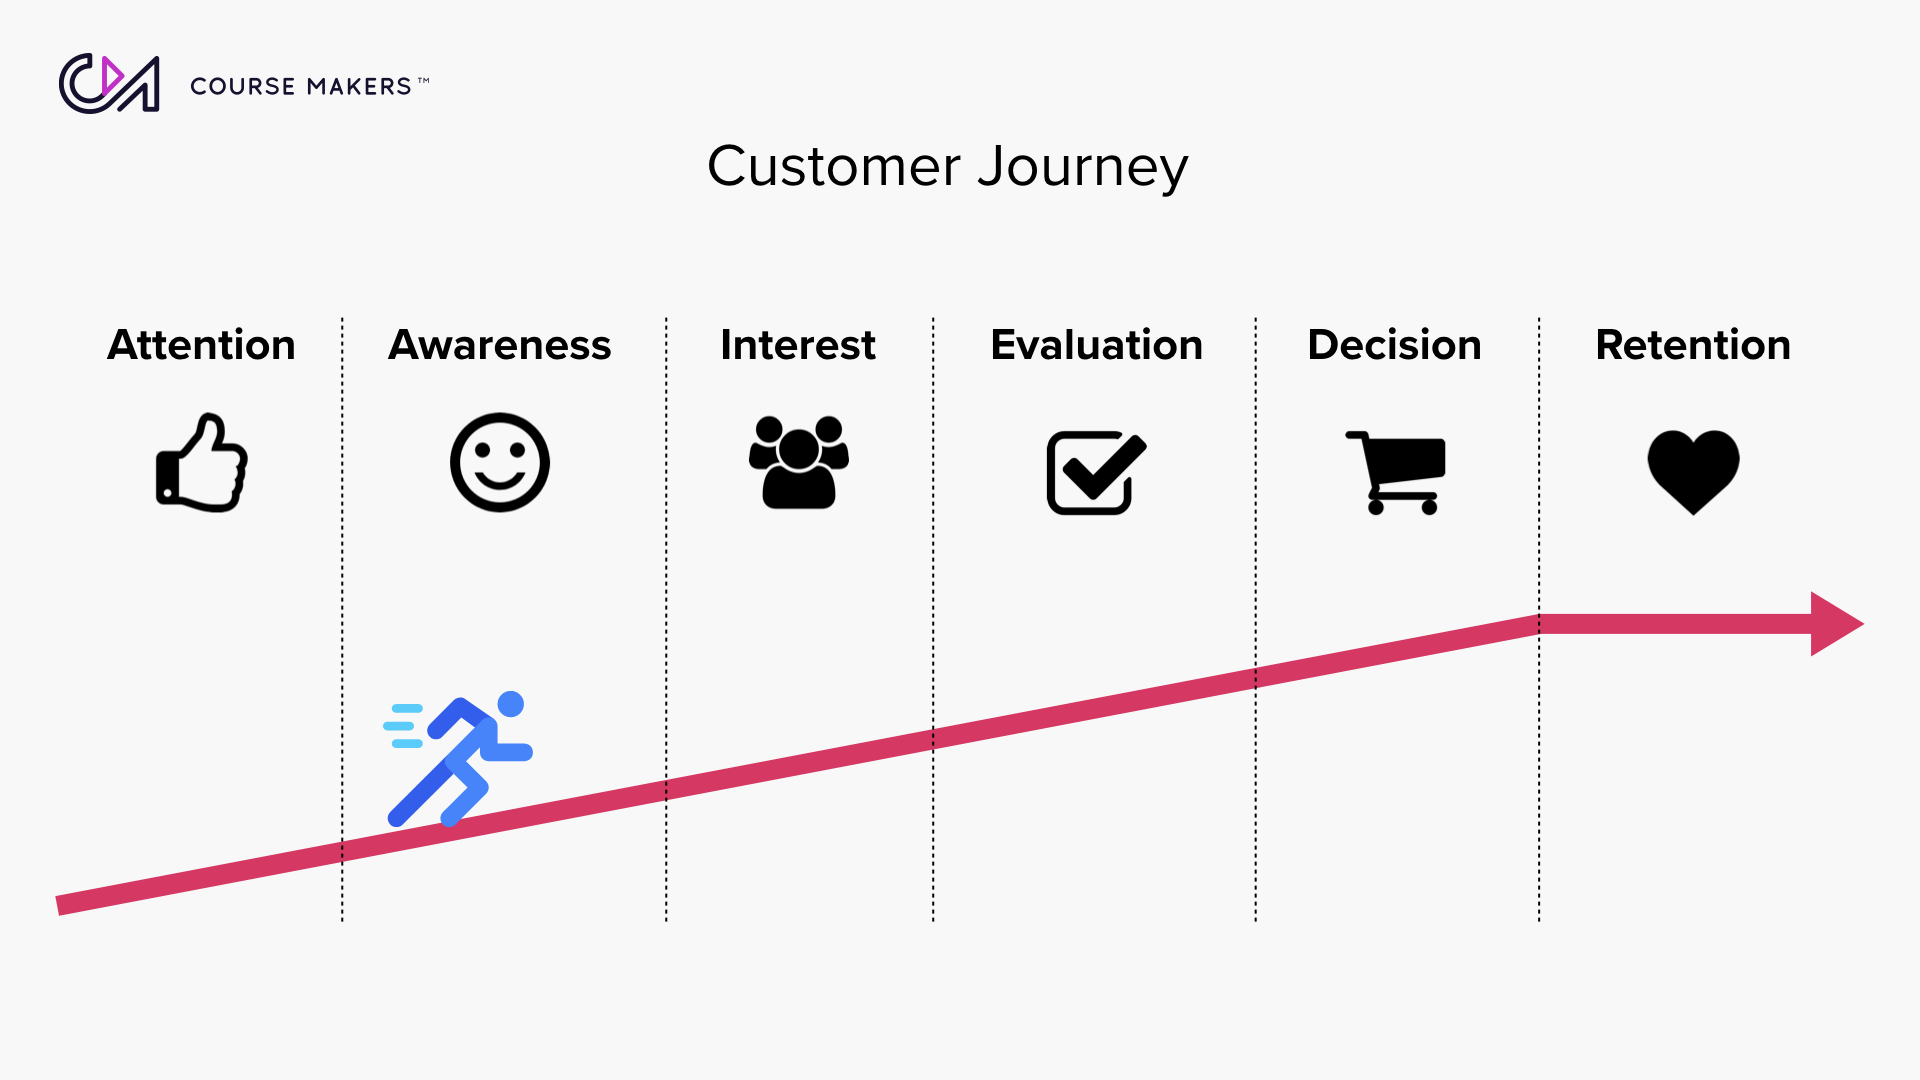 Customer Journey in Online Courses